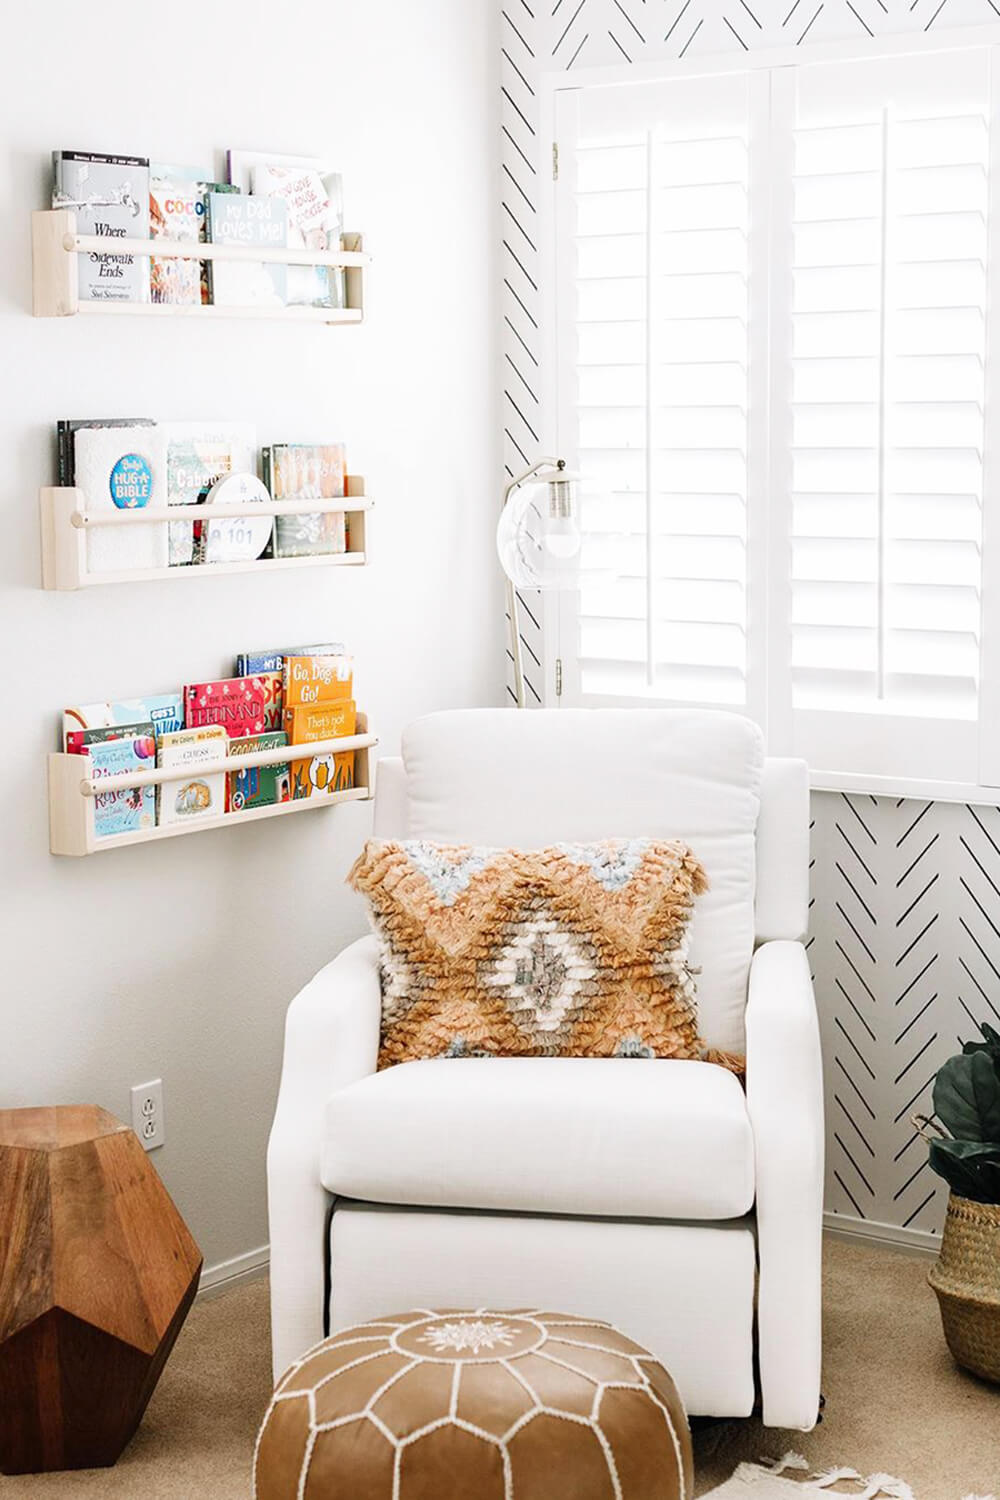 White boho nursery interior with white armchair, bohemian nursery decor and floating shelves